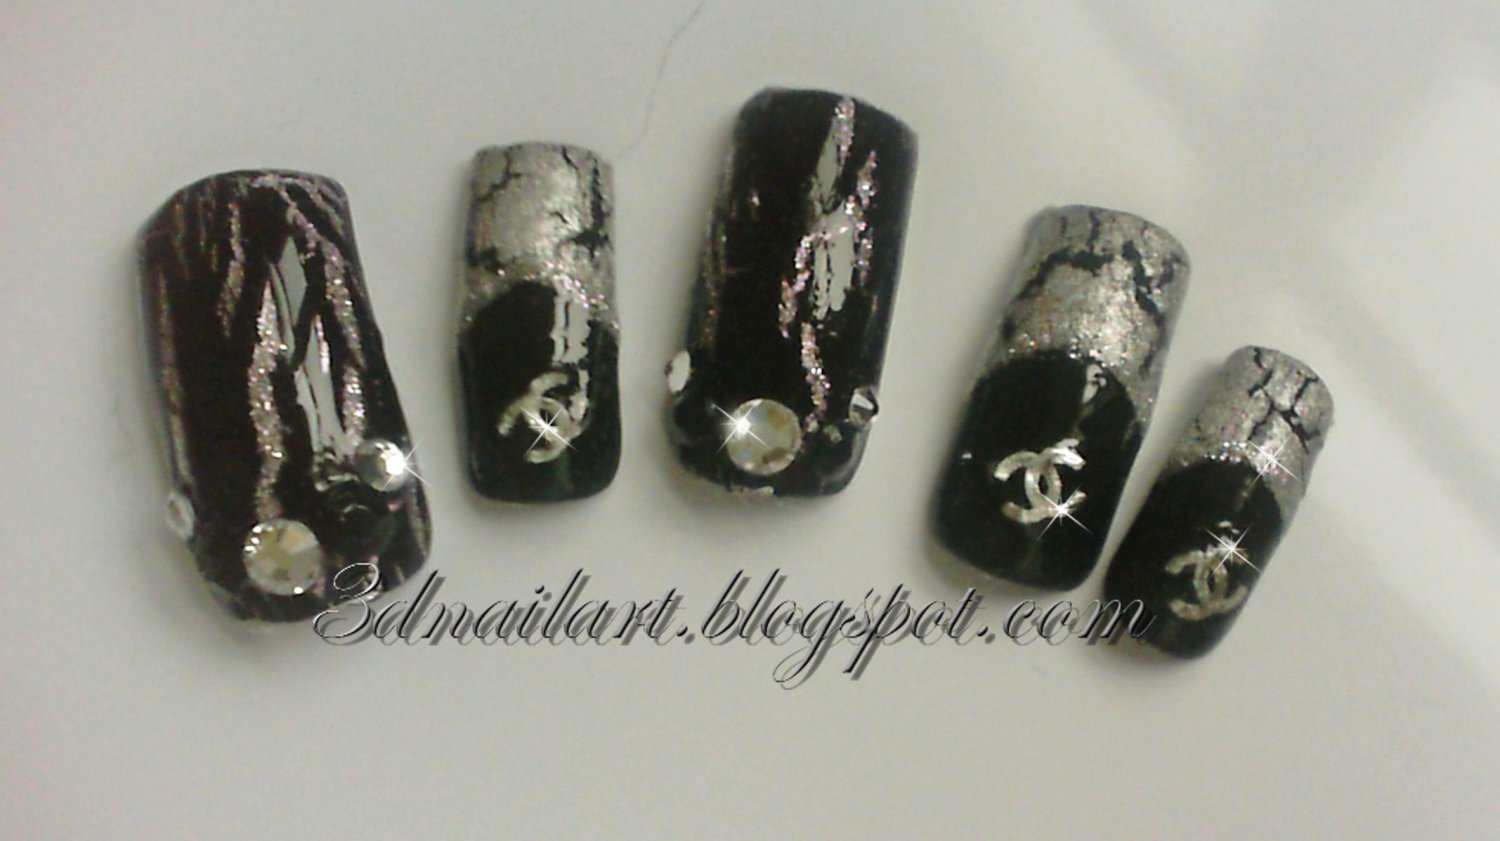 SALE! Silver & Black Chanel Crackle Set